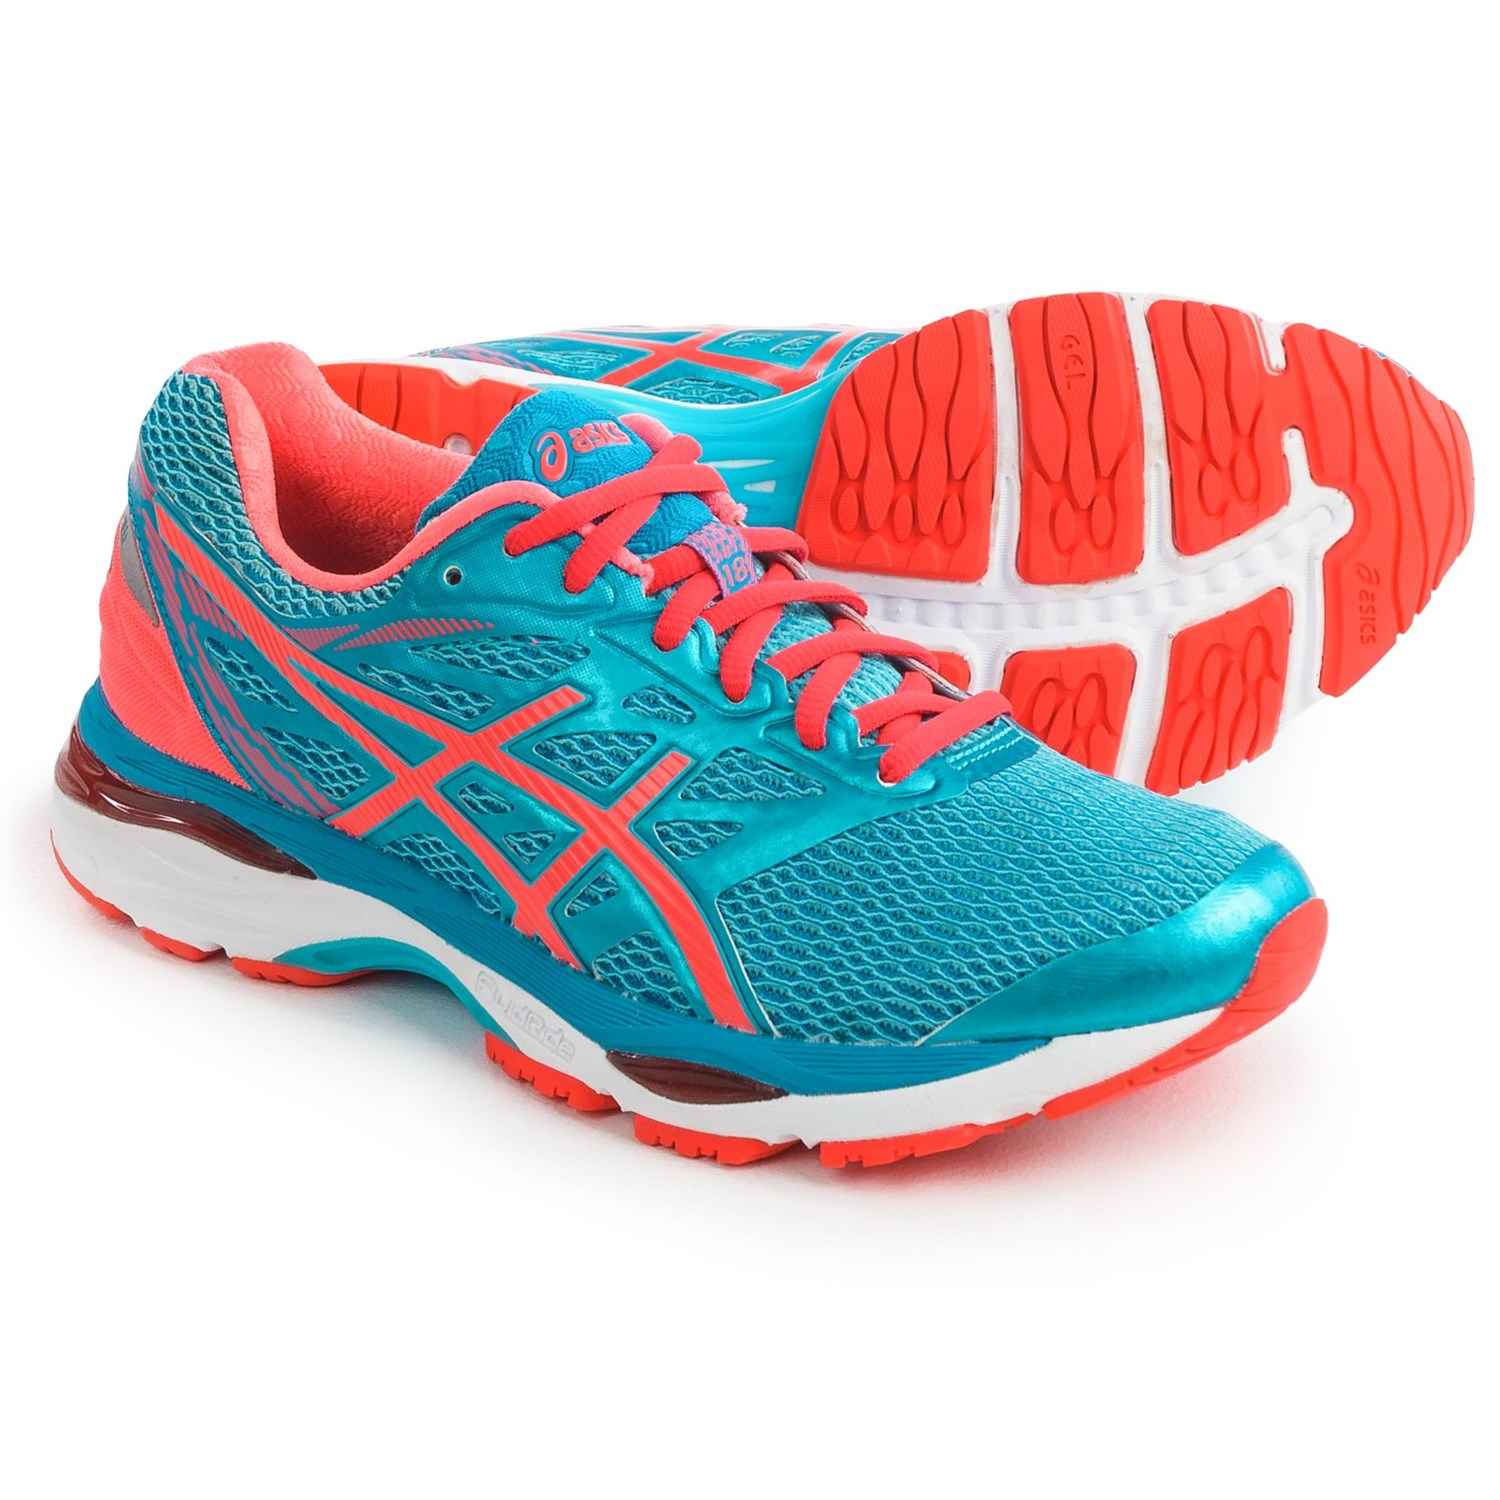 Asics Gel Running Shoes Women Size